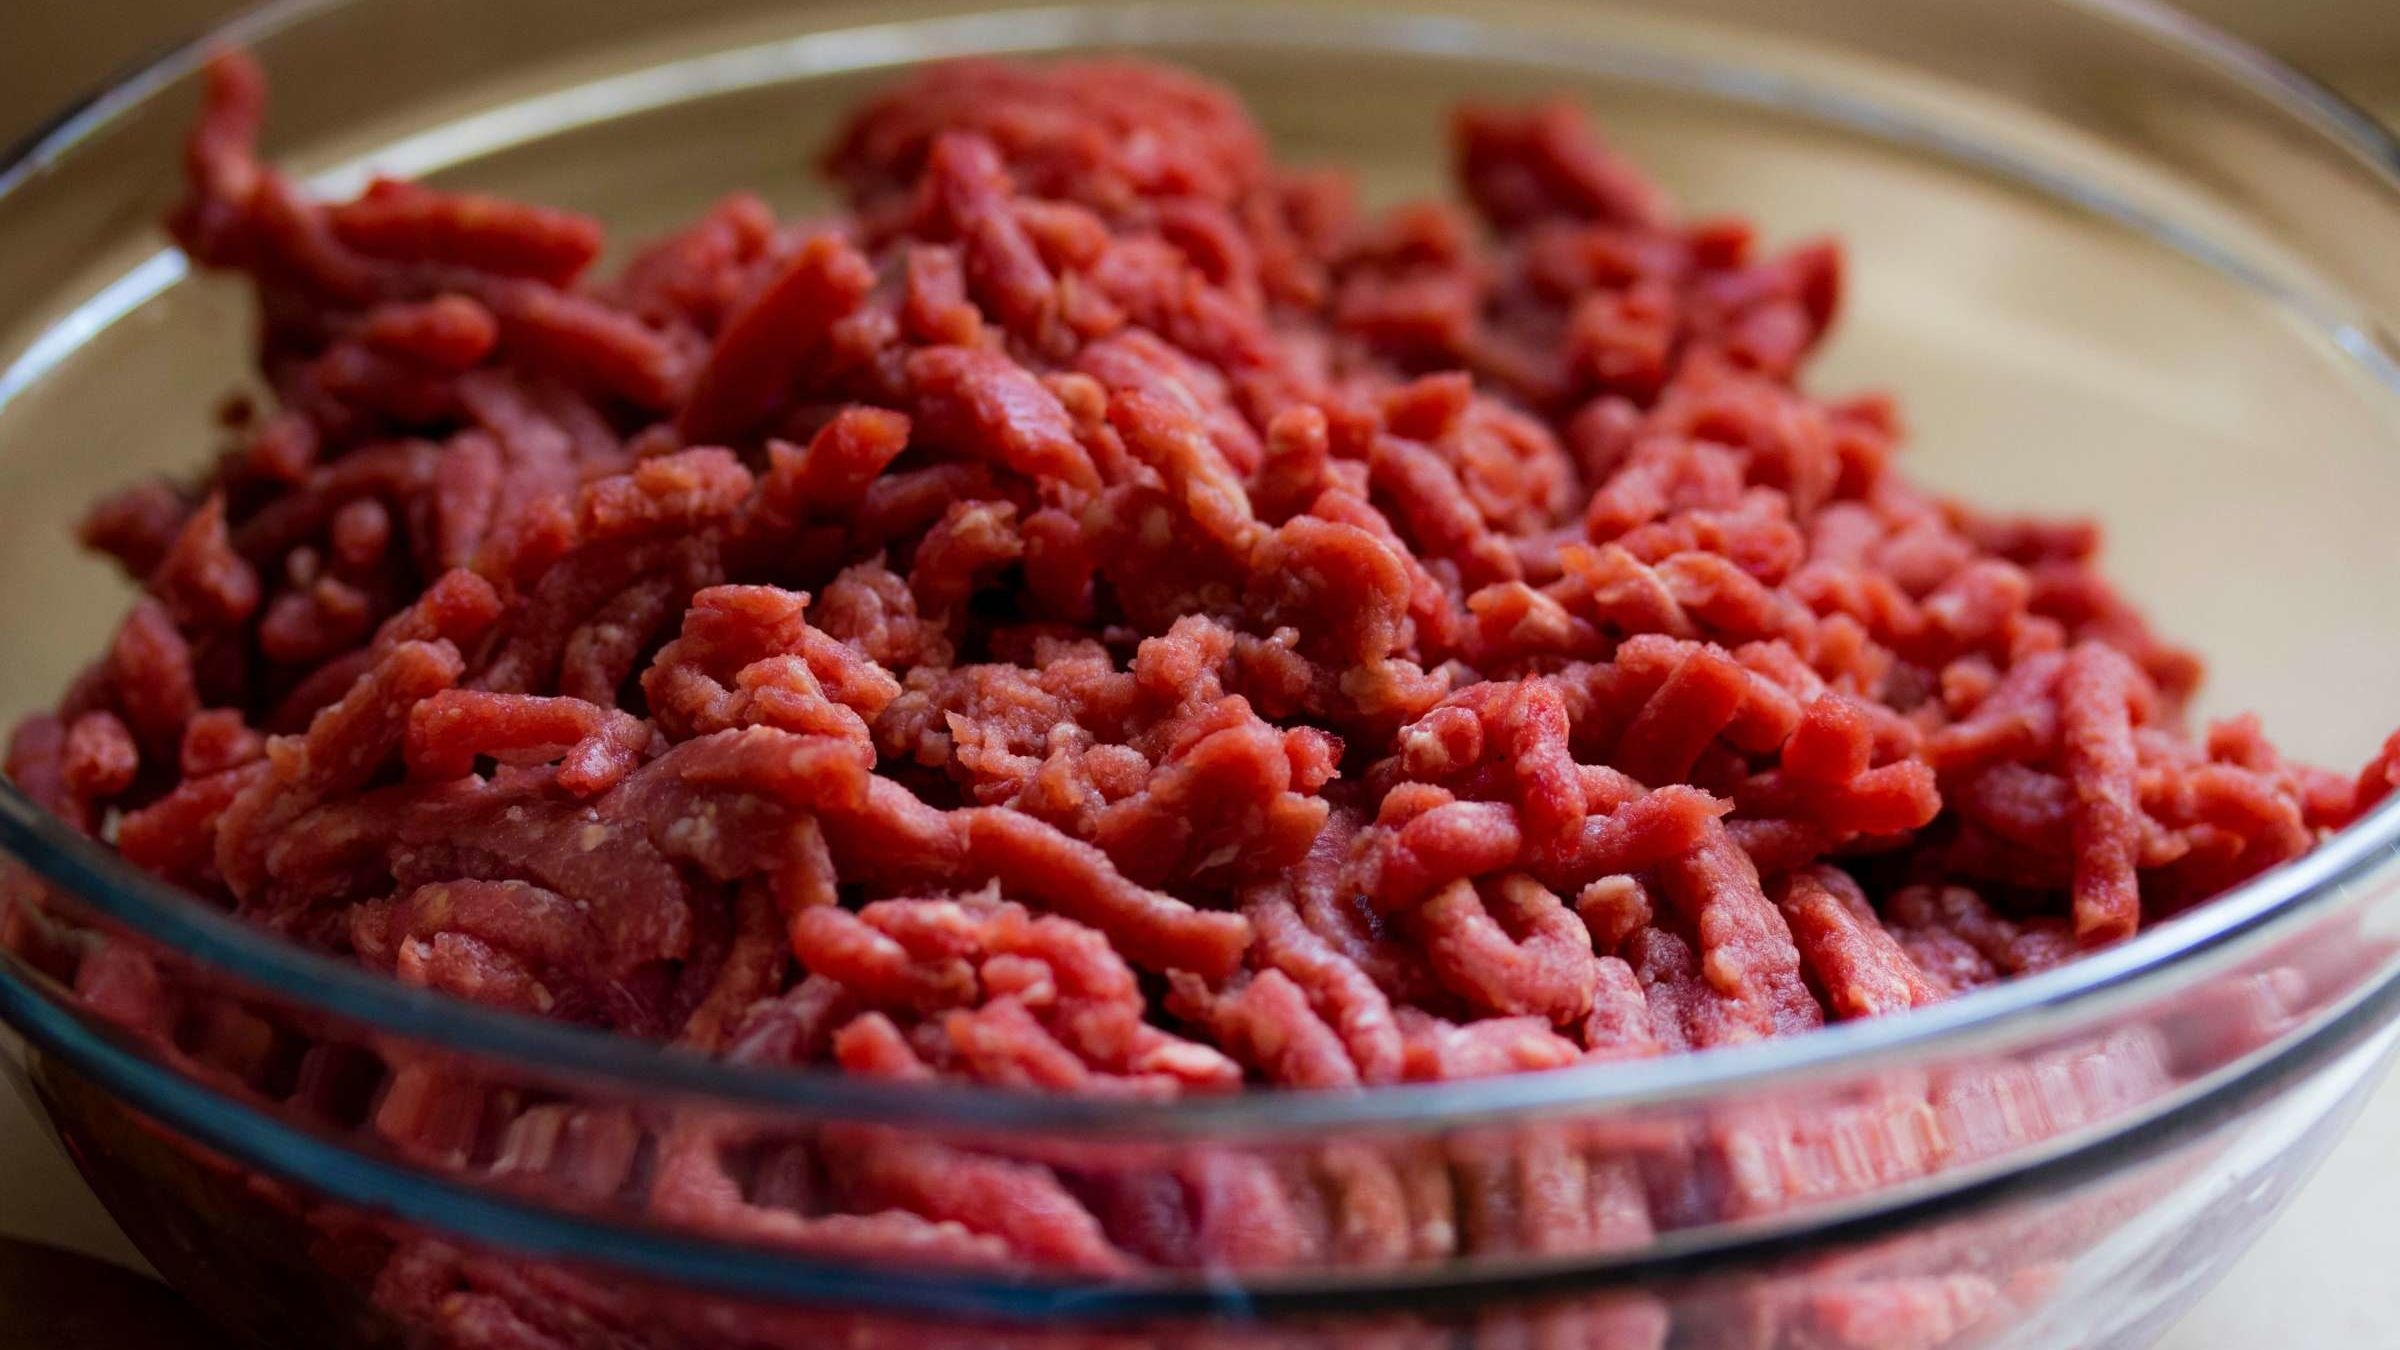 More Than 38,000 Pounds of Ground Beef Has Been Recalled